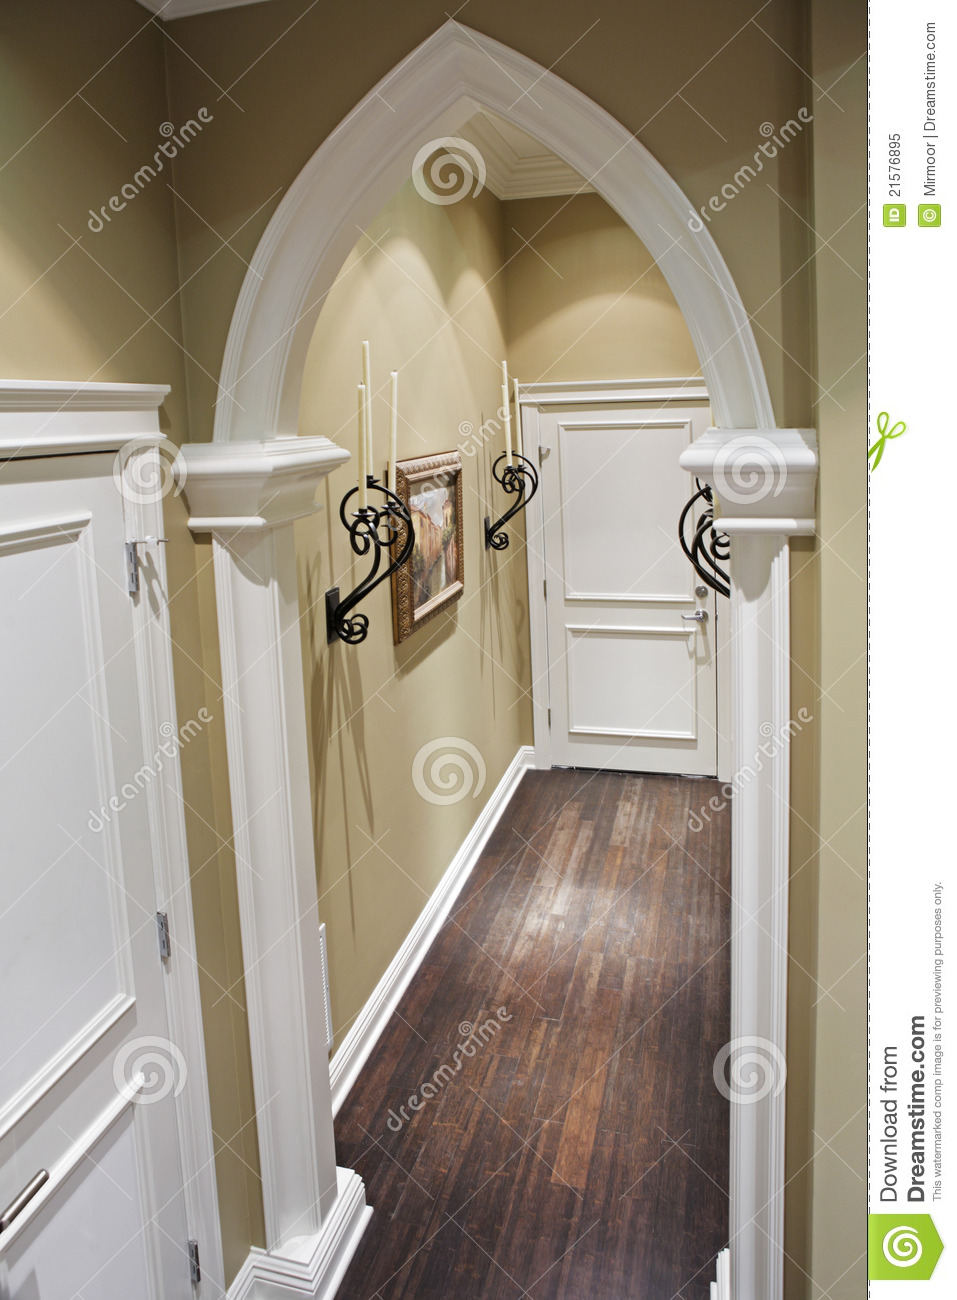 Home corridor with decorative metal details royalty free stock photo image 21576895 - Decoratie corridor ...